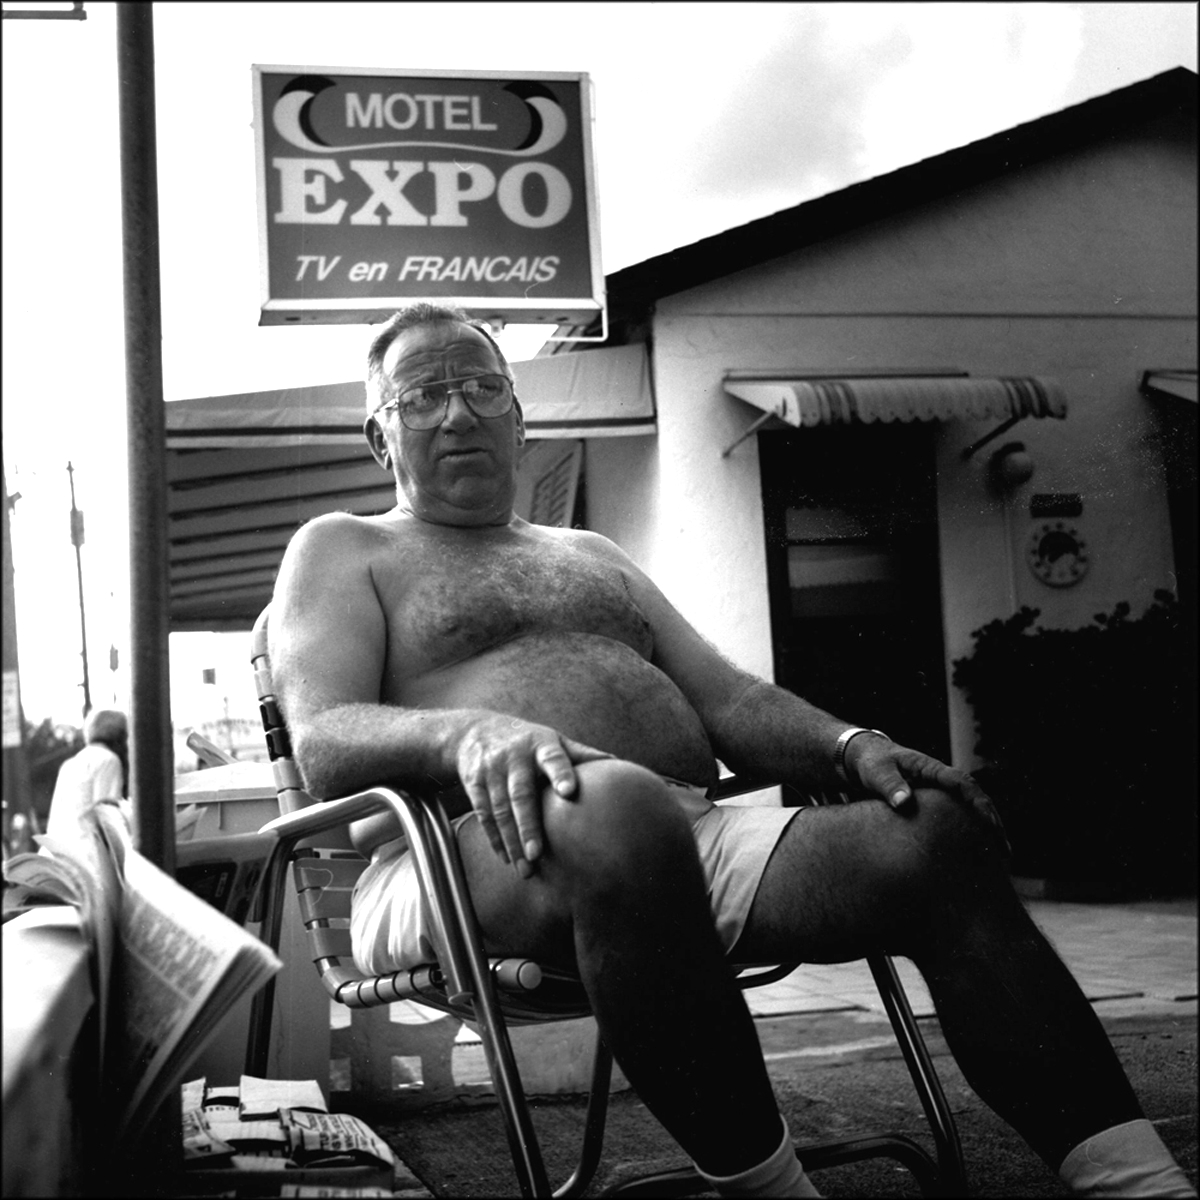 Motel Expo, Florida (1992)